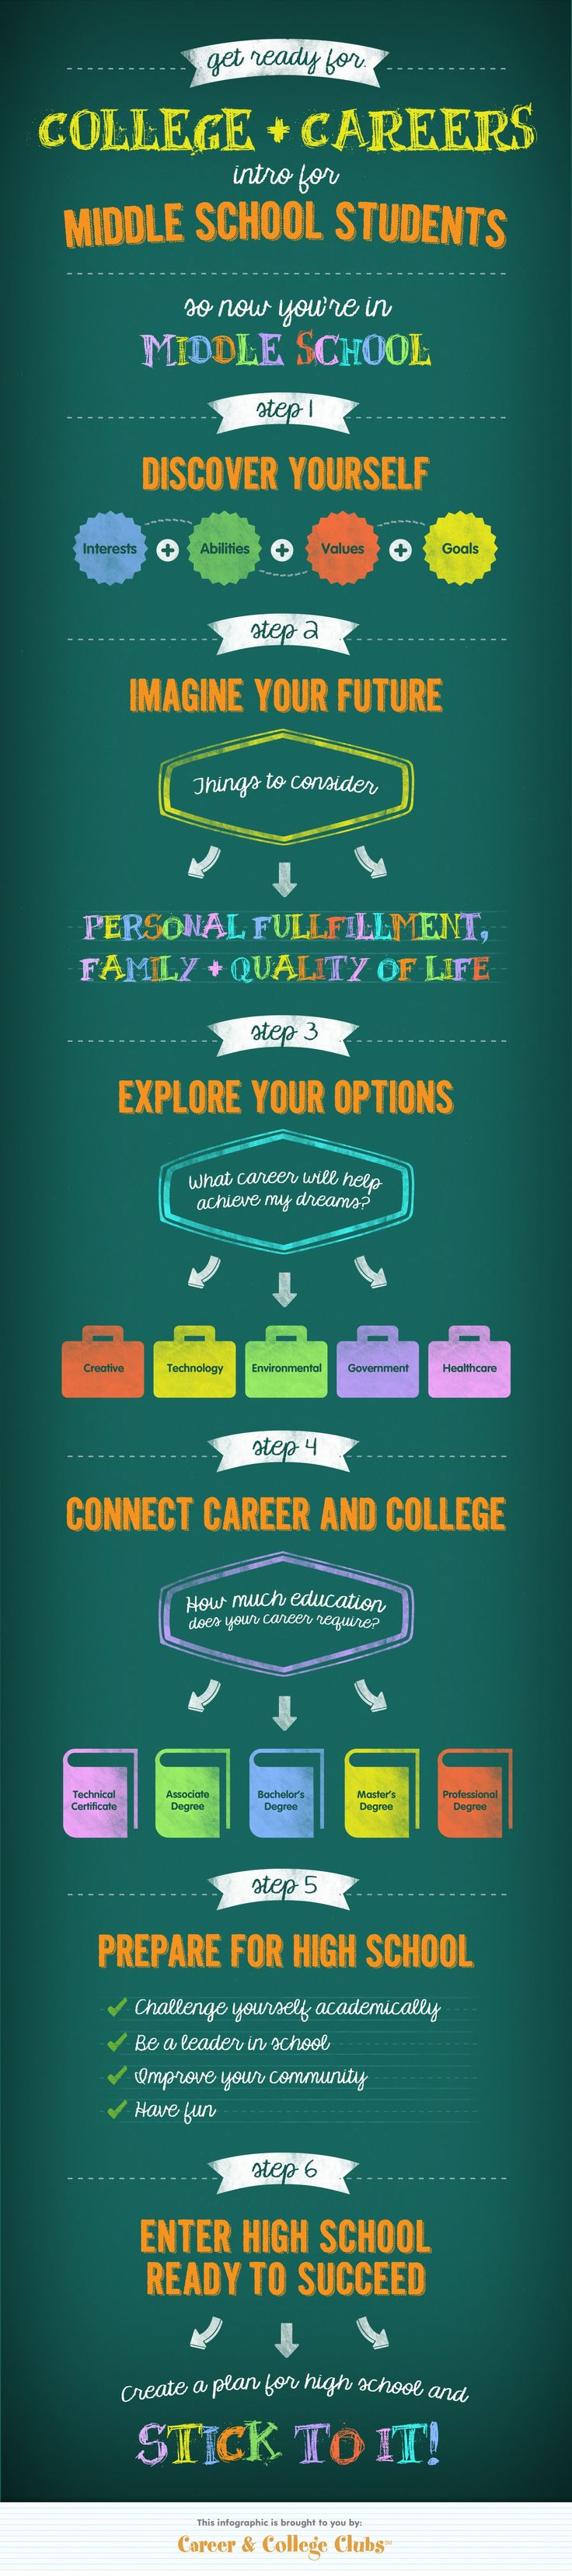 best images about career guidance career career college clubs has designed a fun and easy to follow infographic that gives middle school students the essential steps to prepare for high school